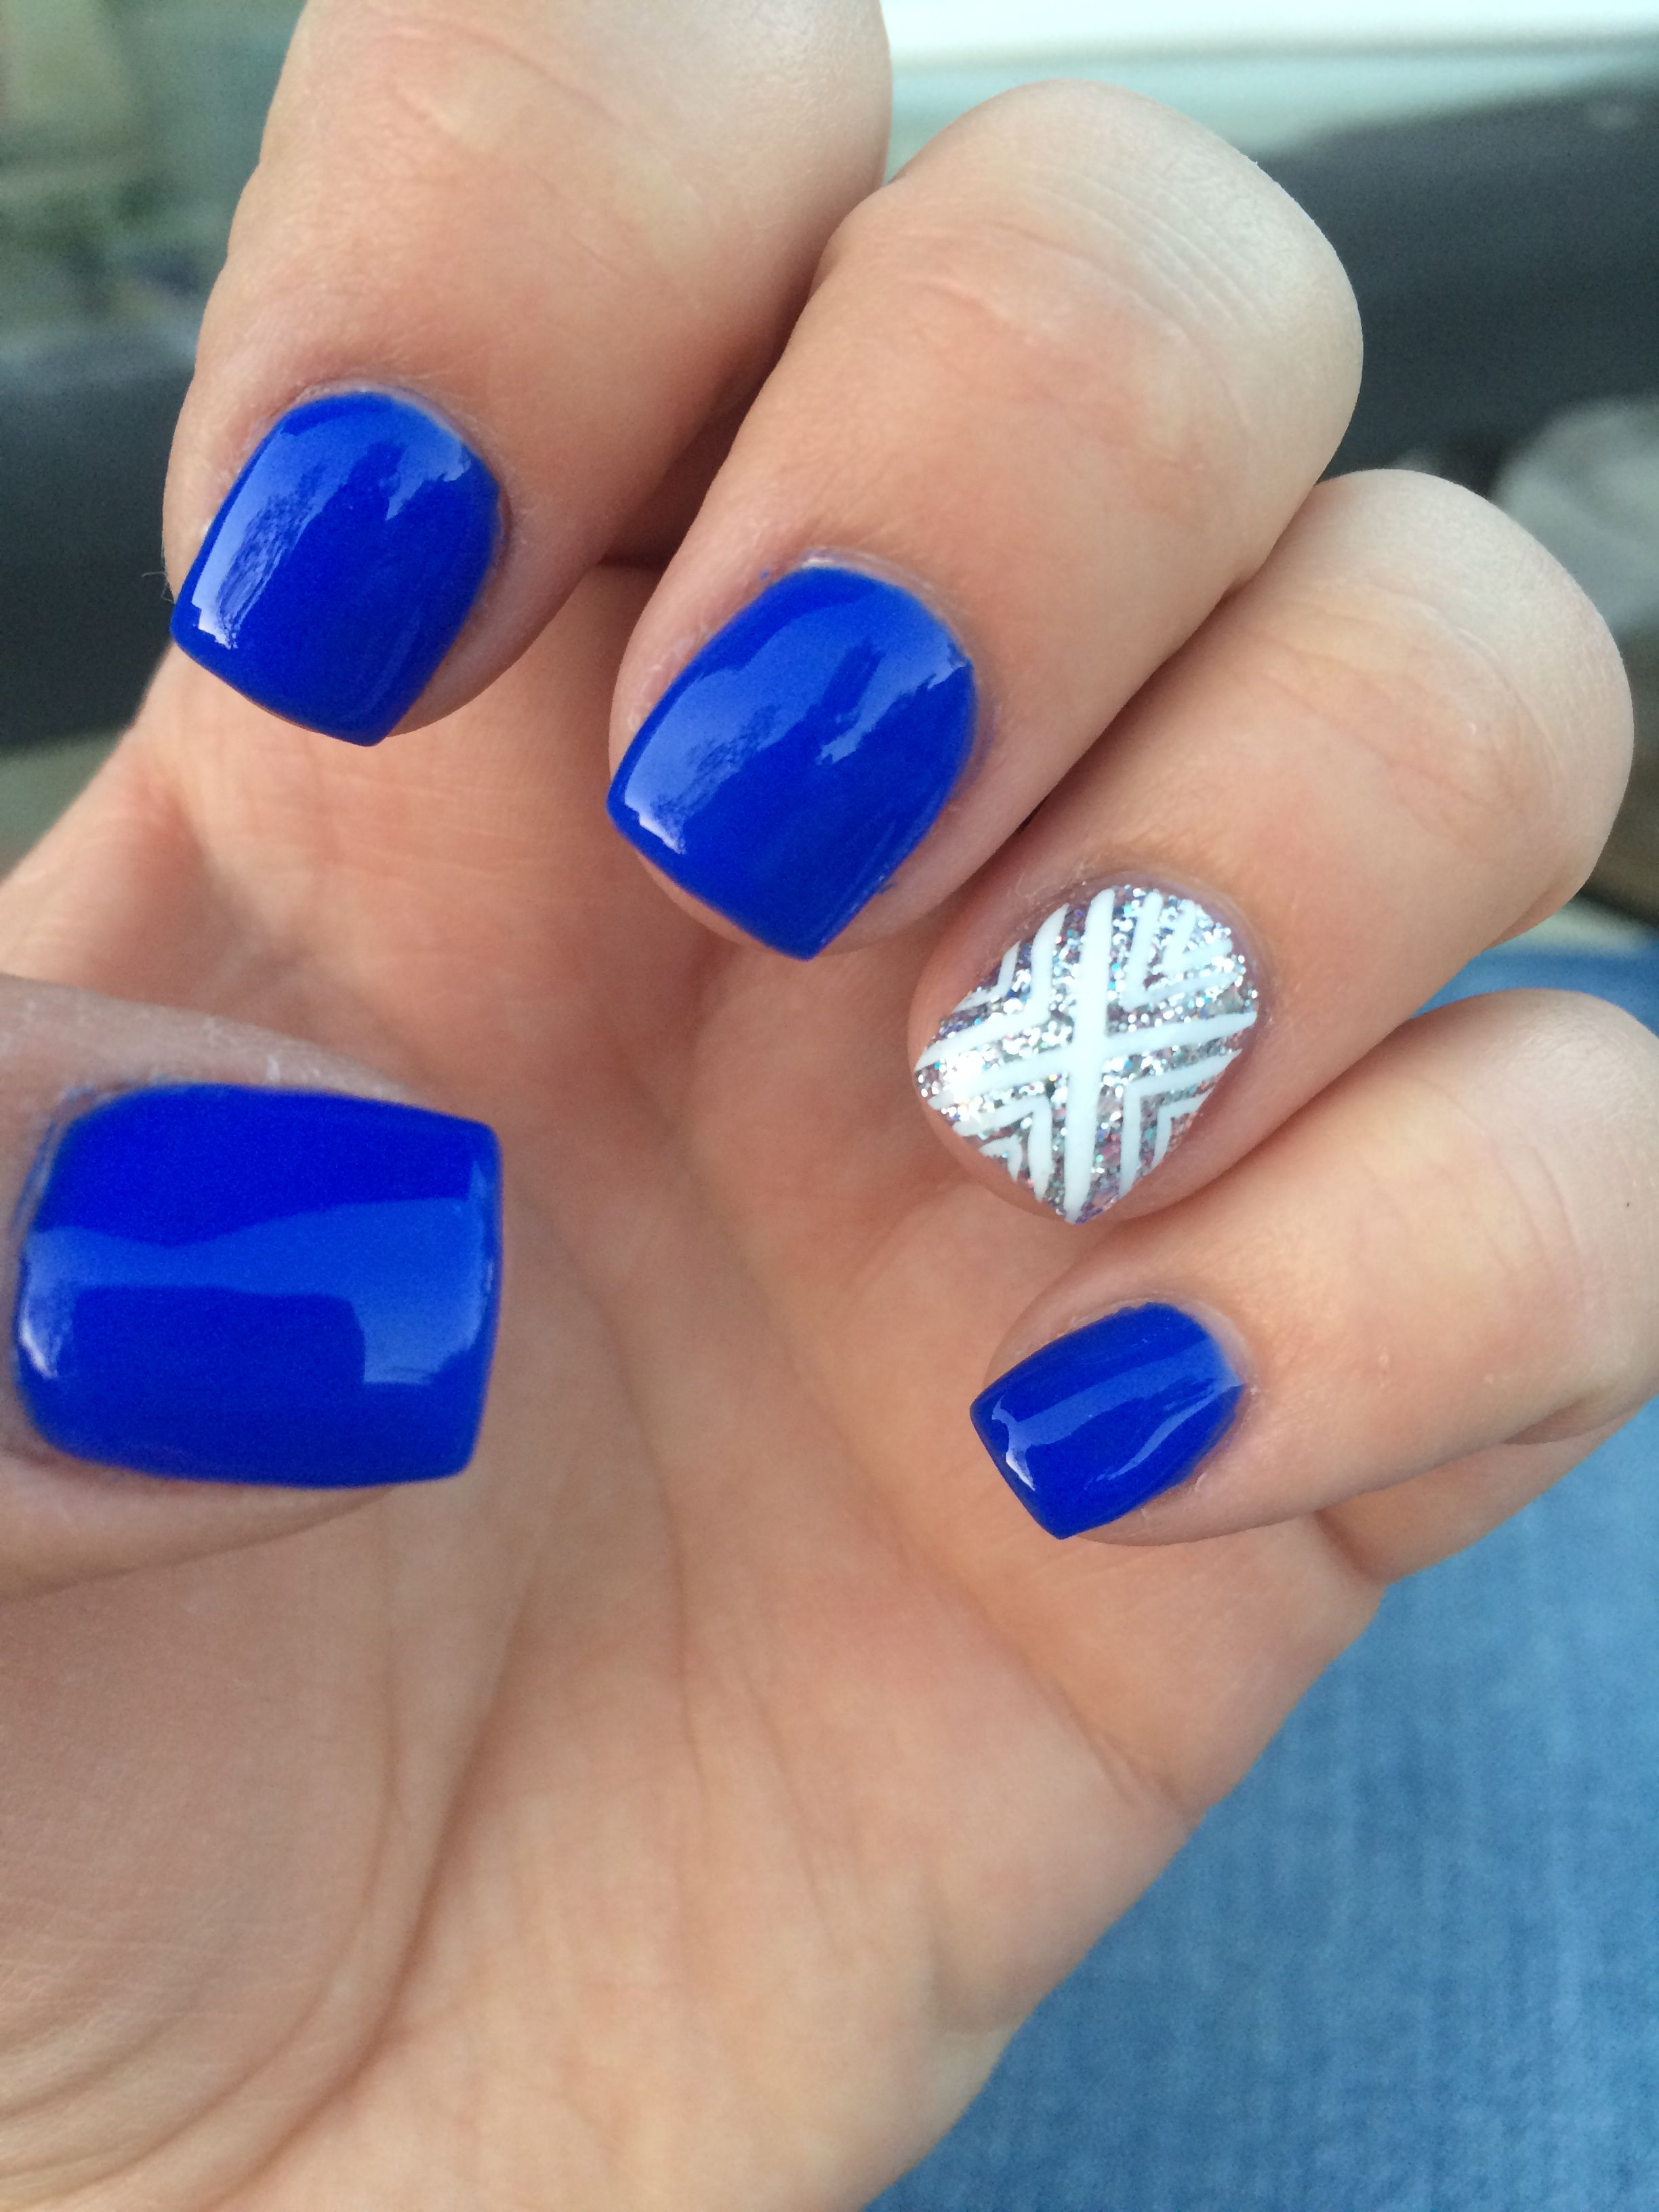 Cute gel nails by Courtney m | My Style | Pinterest | Makeup, Nail ...